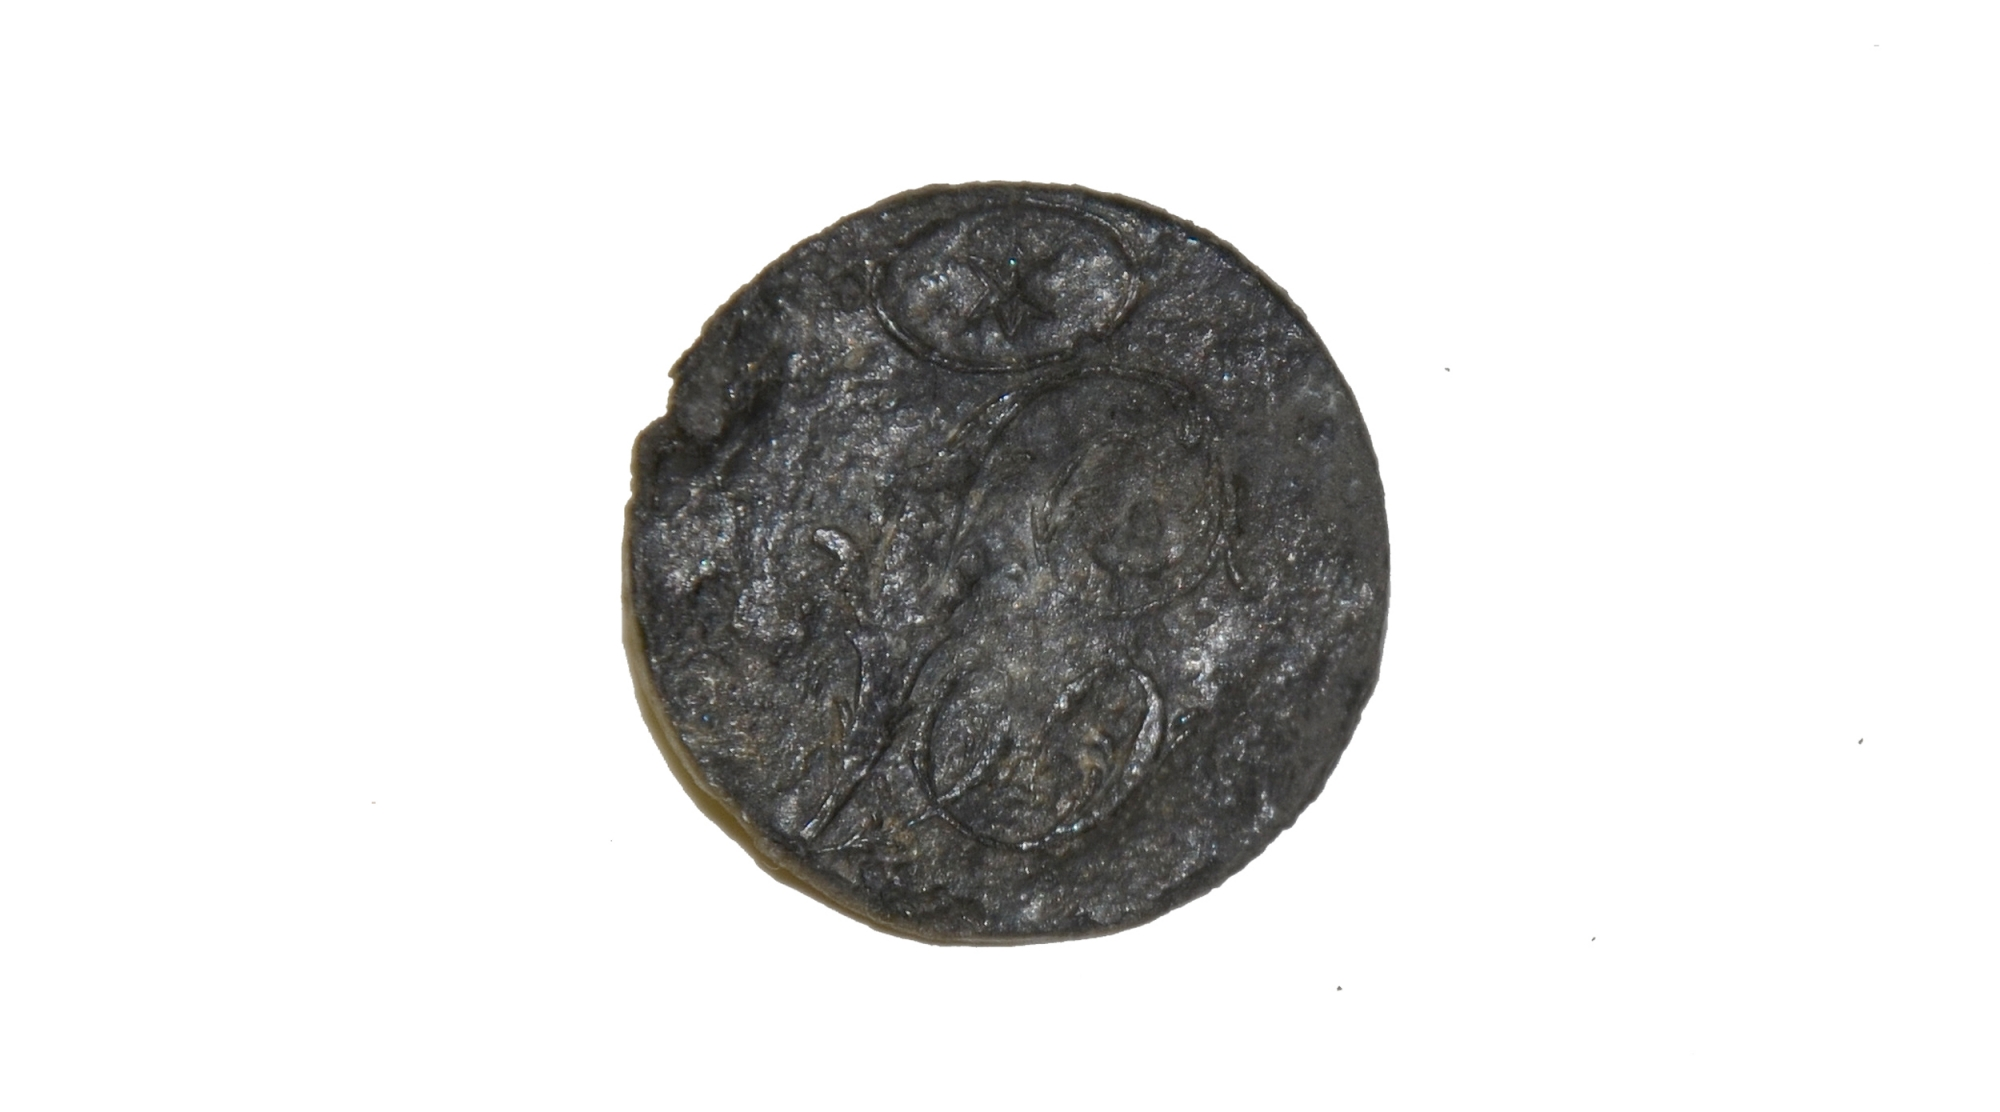 CAST PEWTER INFANTRY BUTTON, CIRCA 1812-50